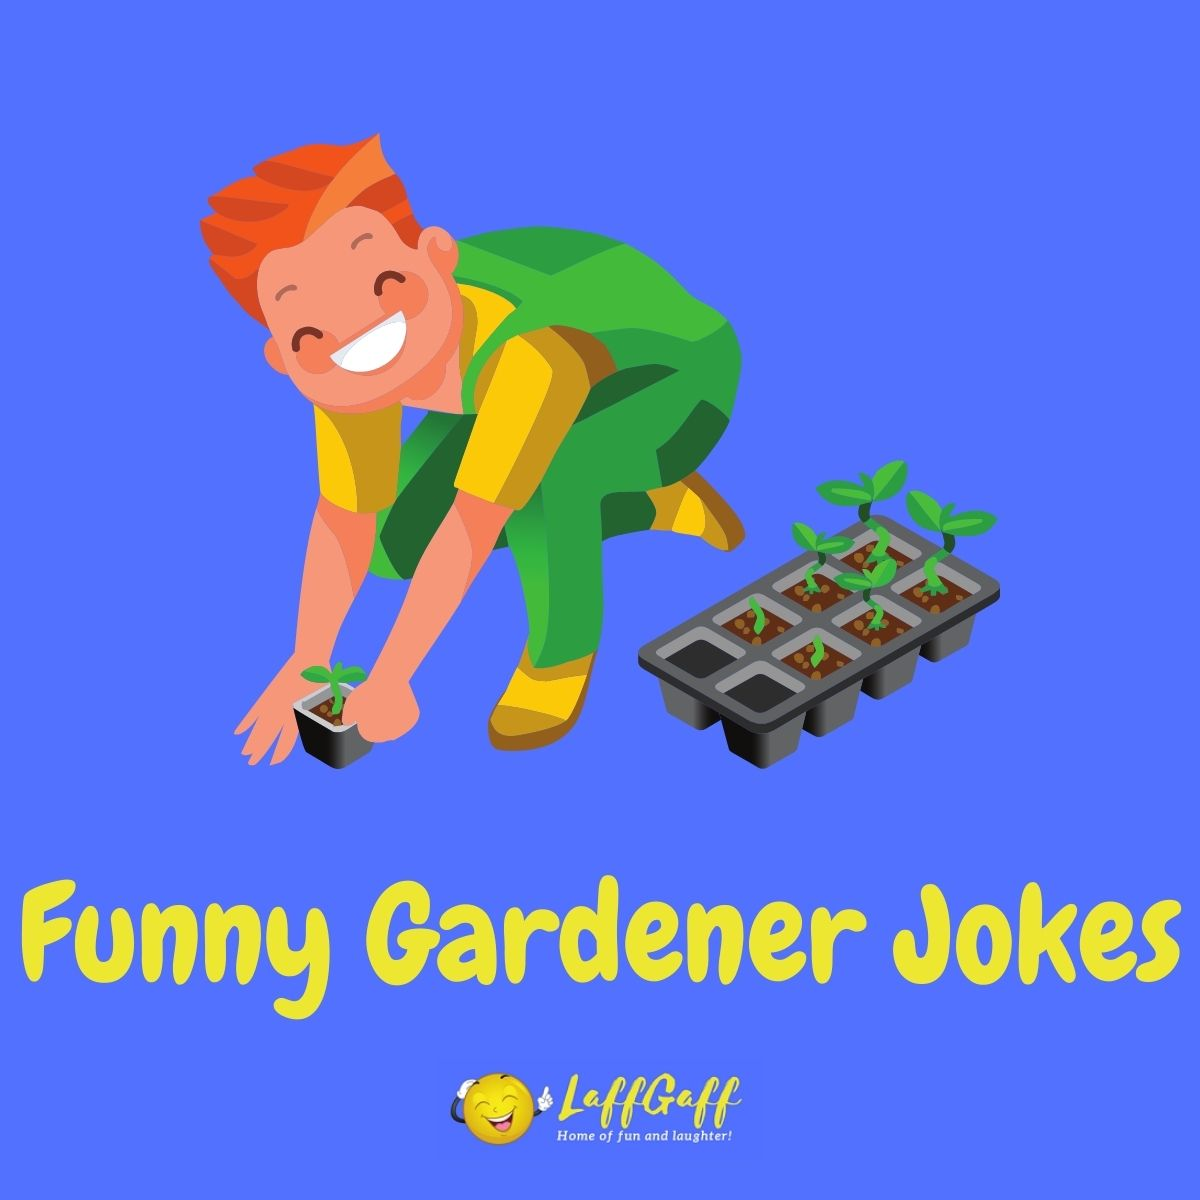 Featured image for a page of funny garden and gardener jokes.